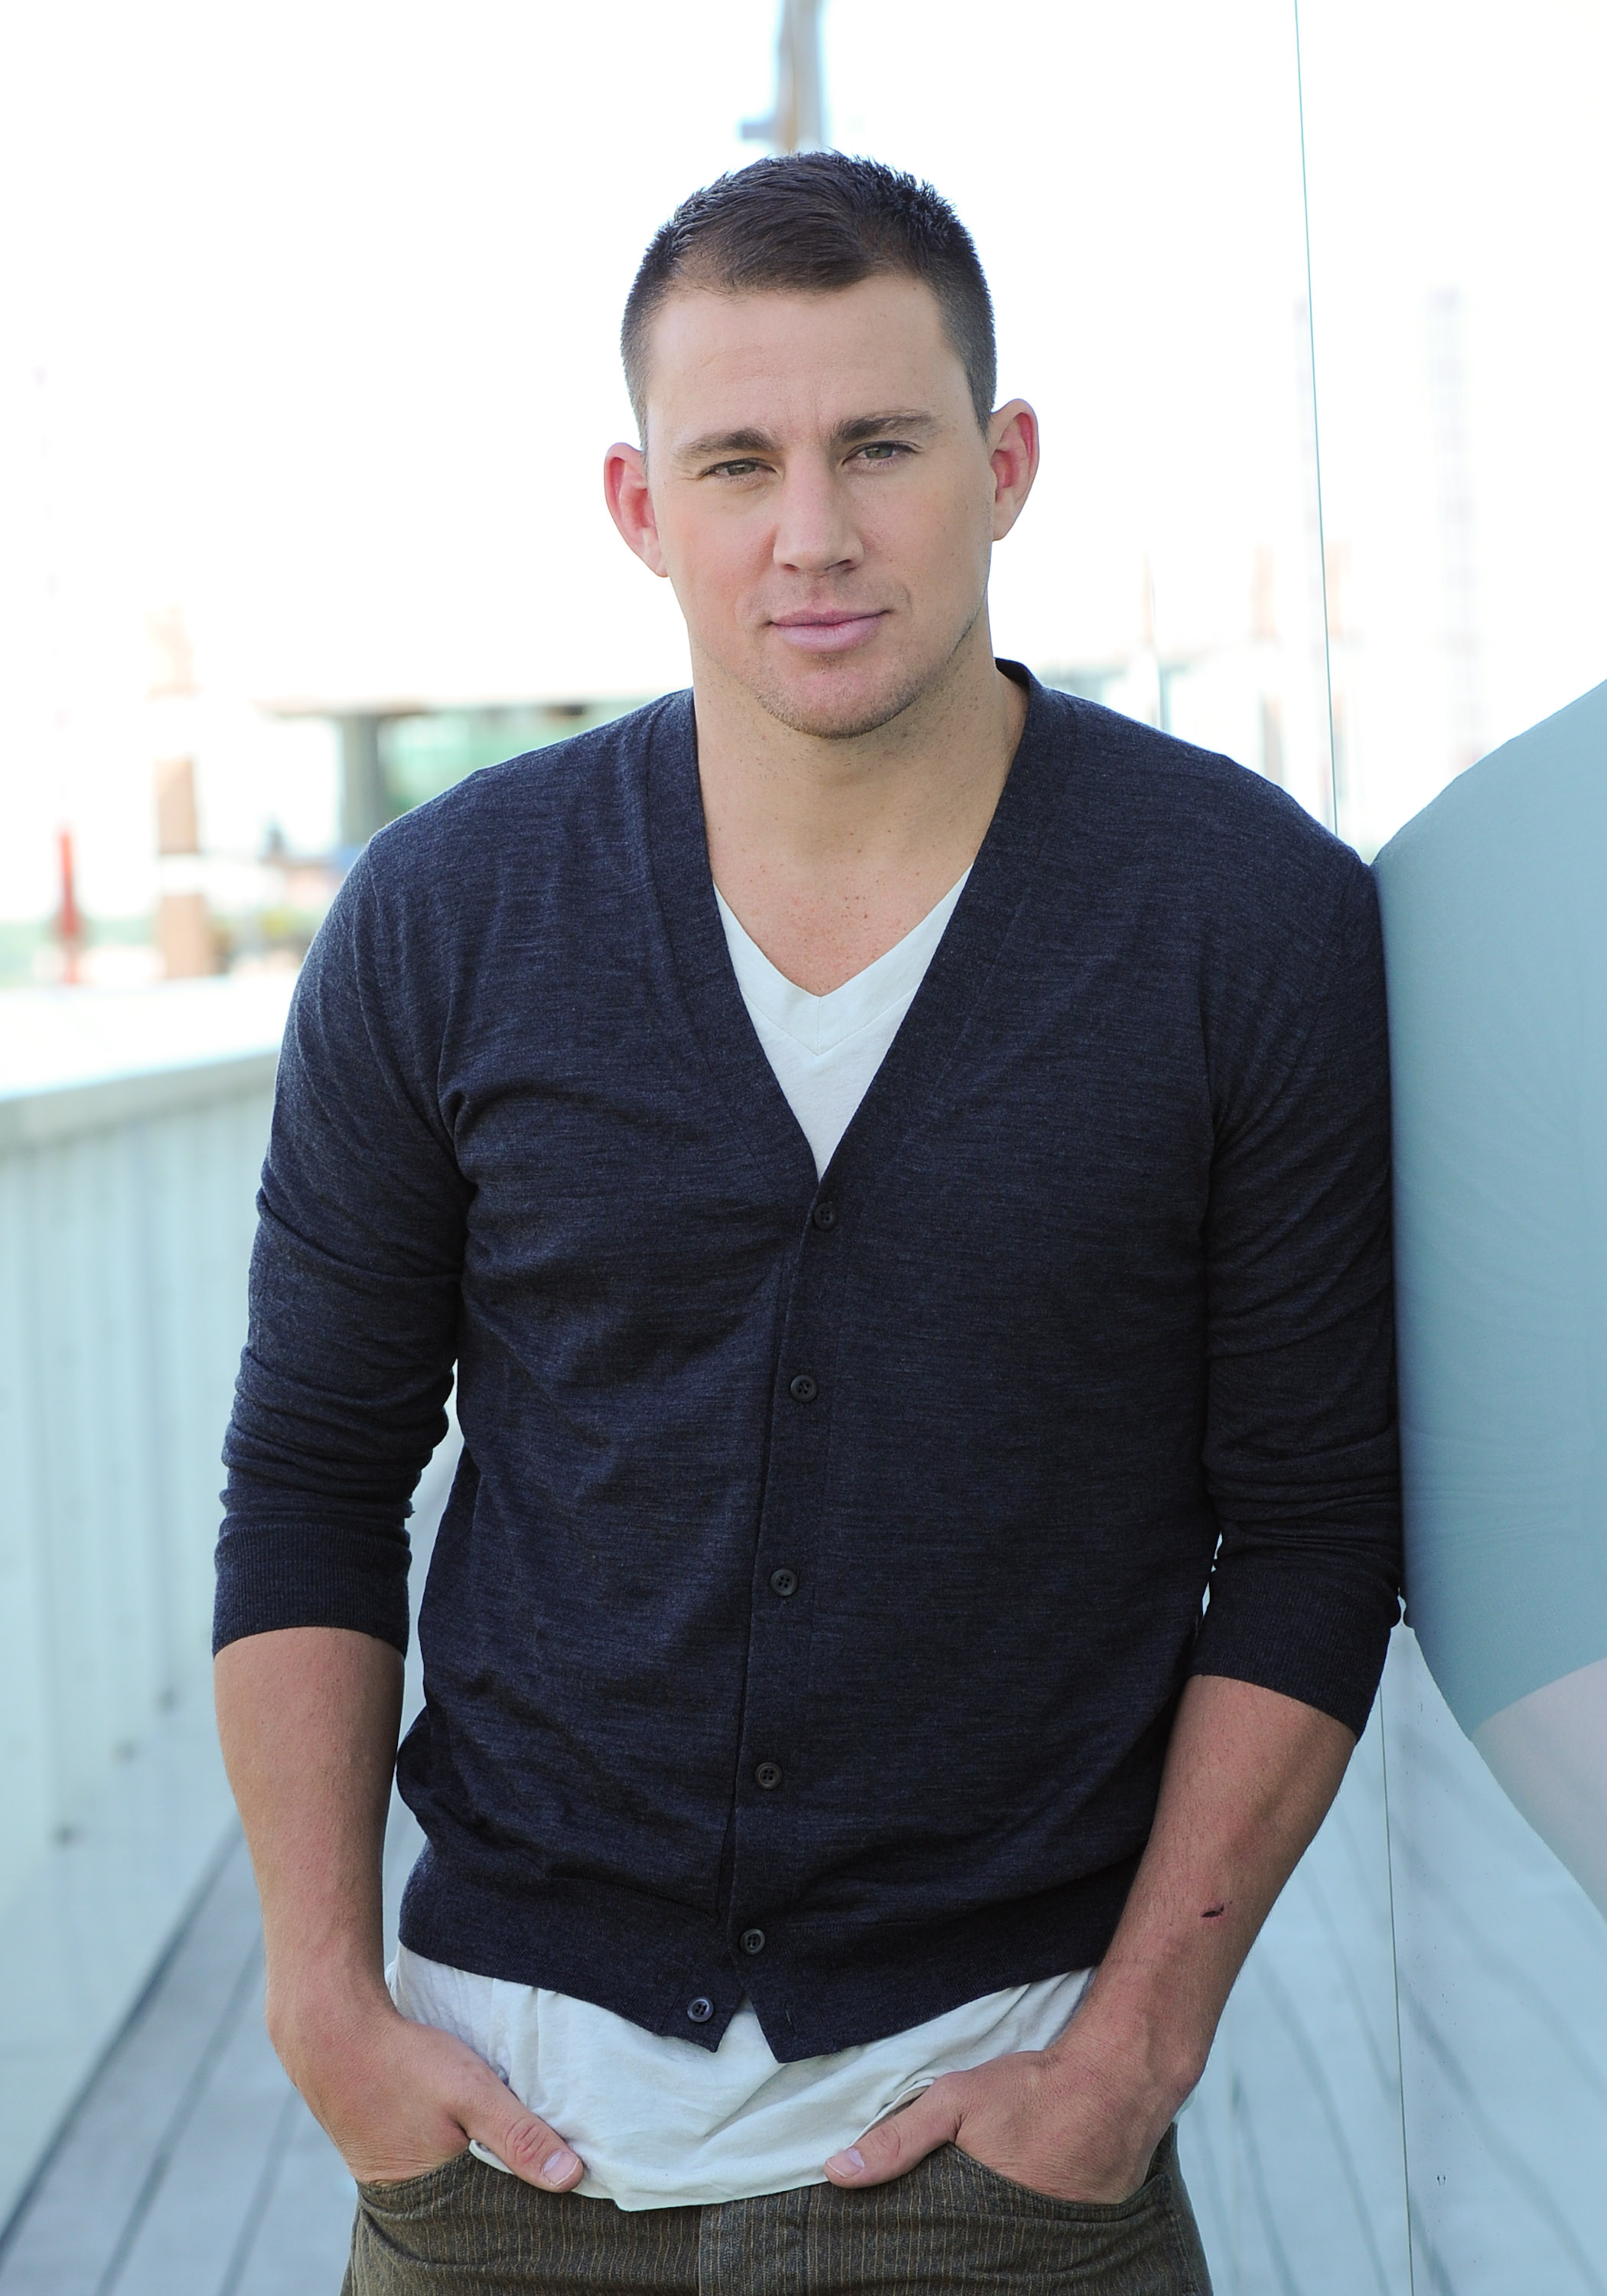 Channing Tatum posed for a portrait at the Thompson Hotel ... Channing Tatum